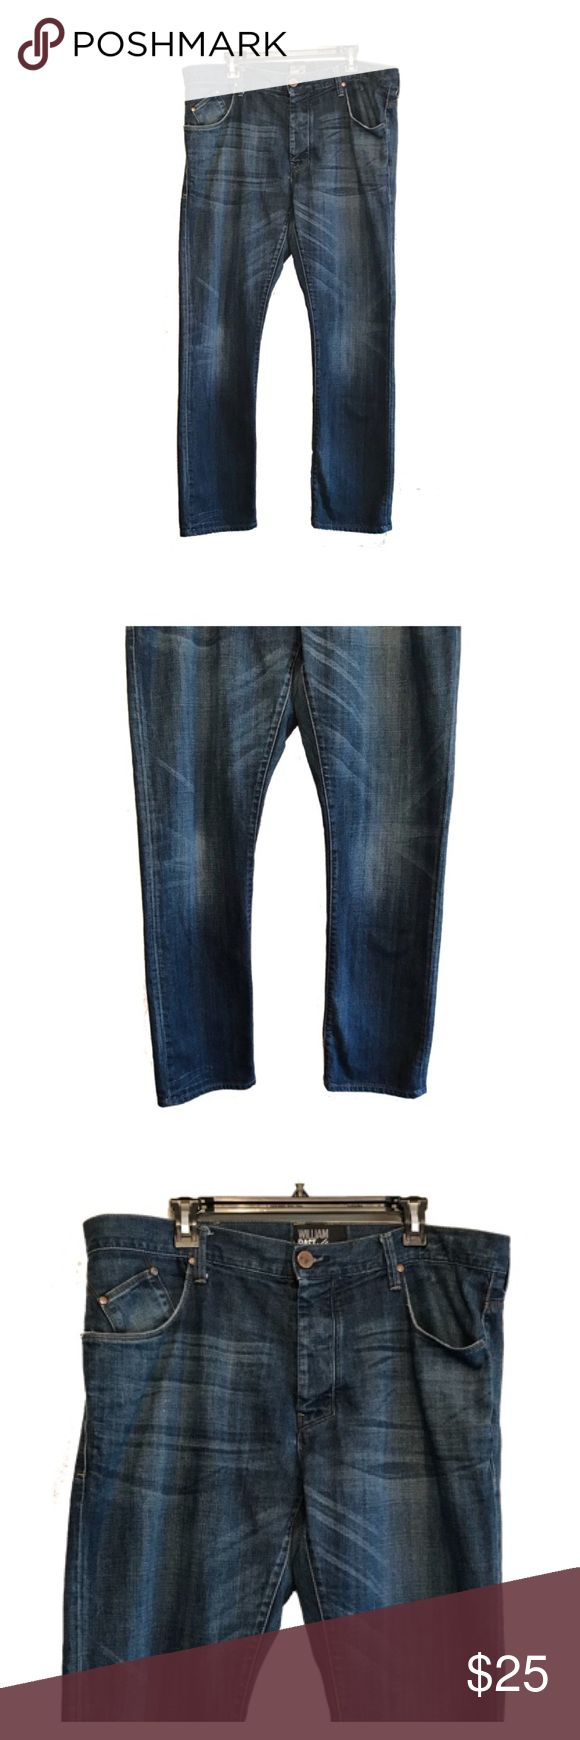 Men's 38x32 William Rast jeans Men's 38x32 William Rast jeans with tapered fit. Great lightly destructed jeans. William Rast Jeans